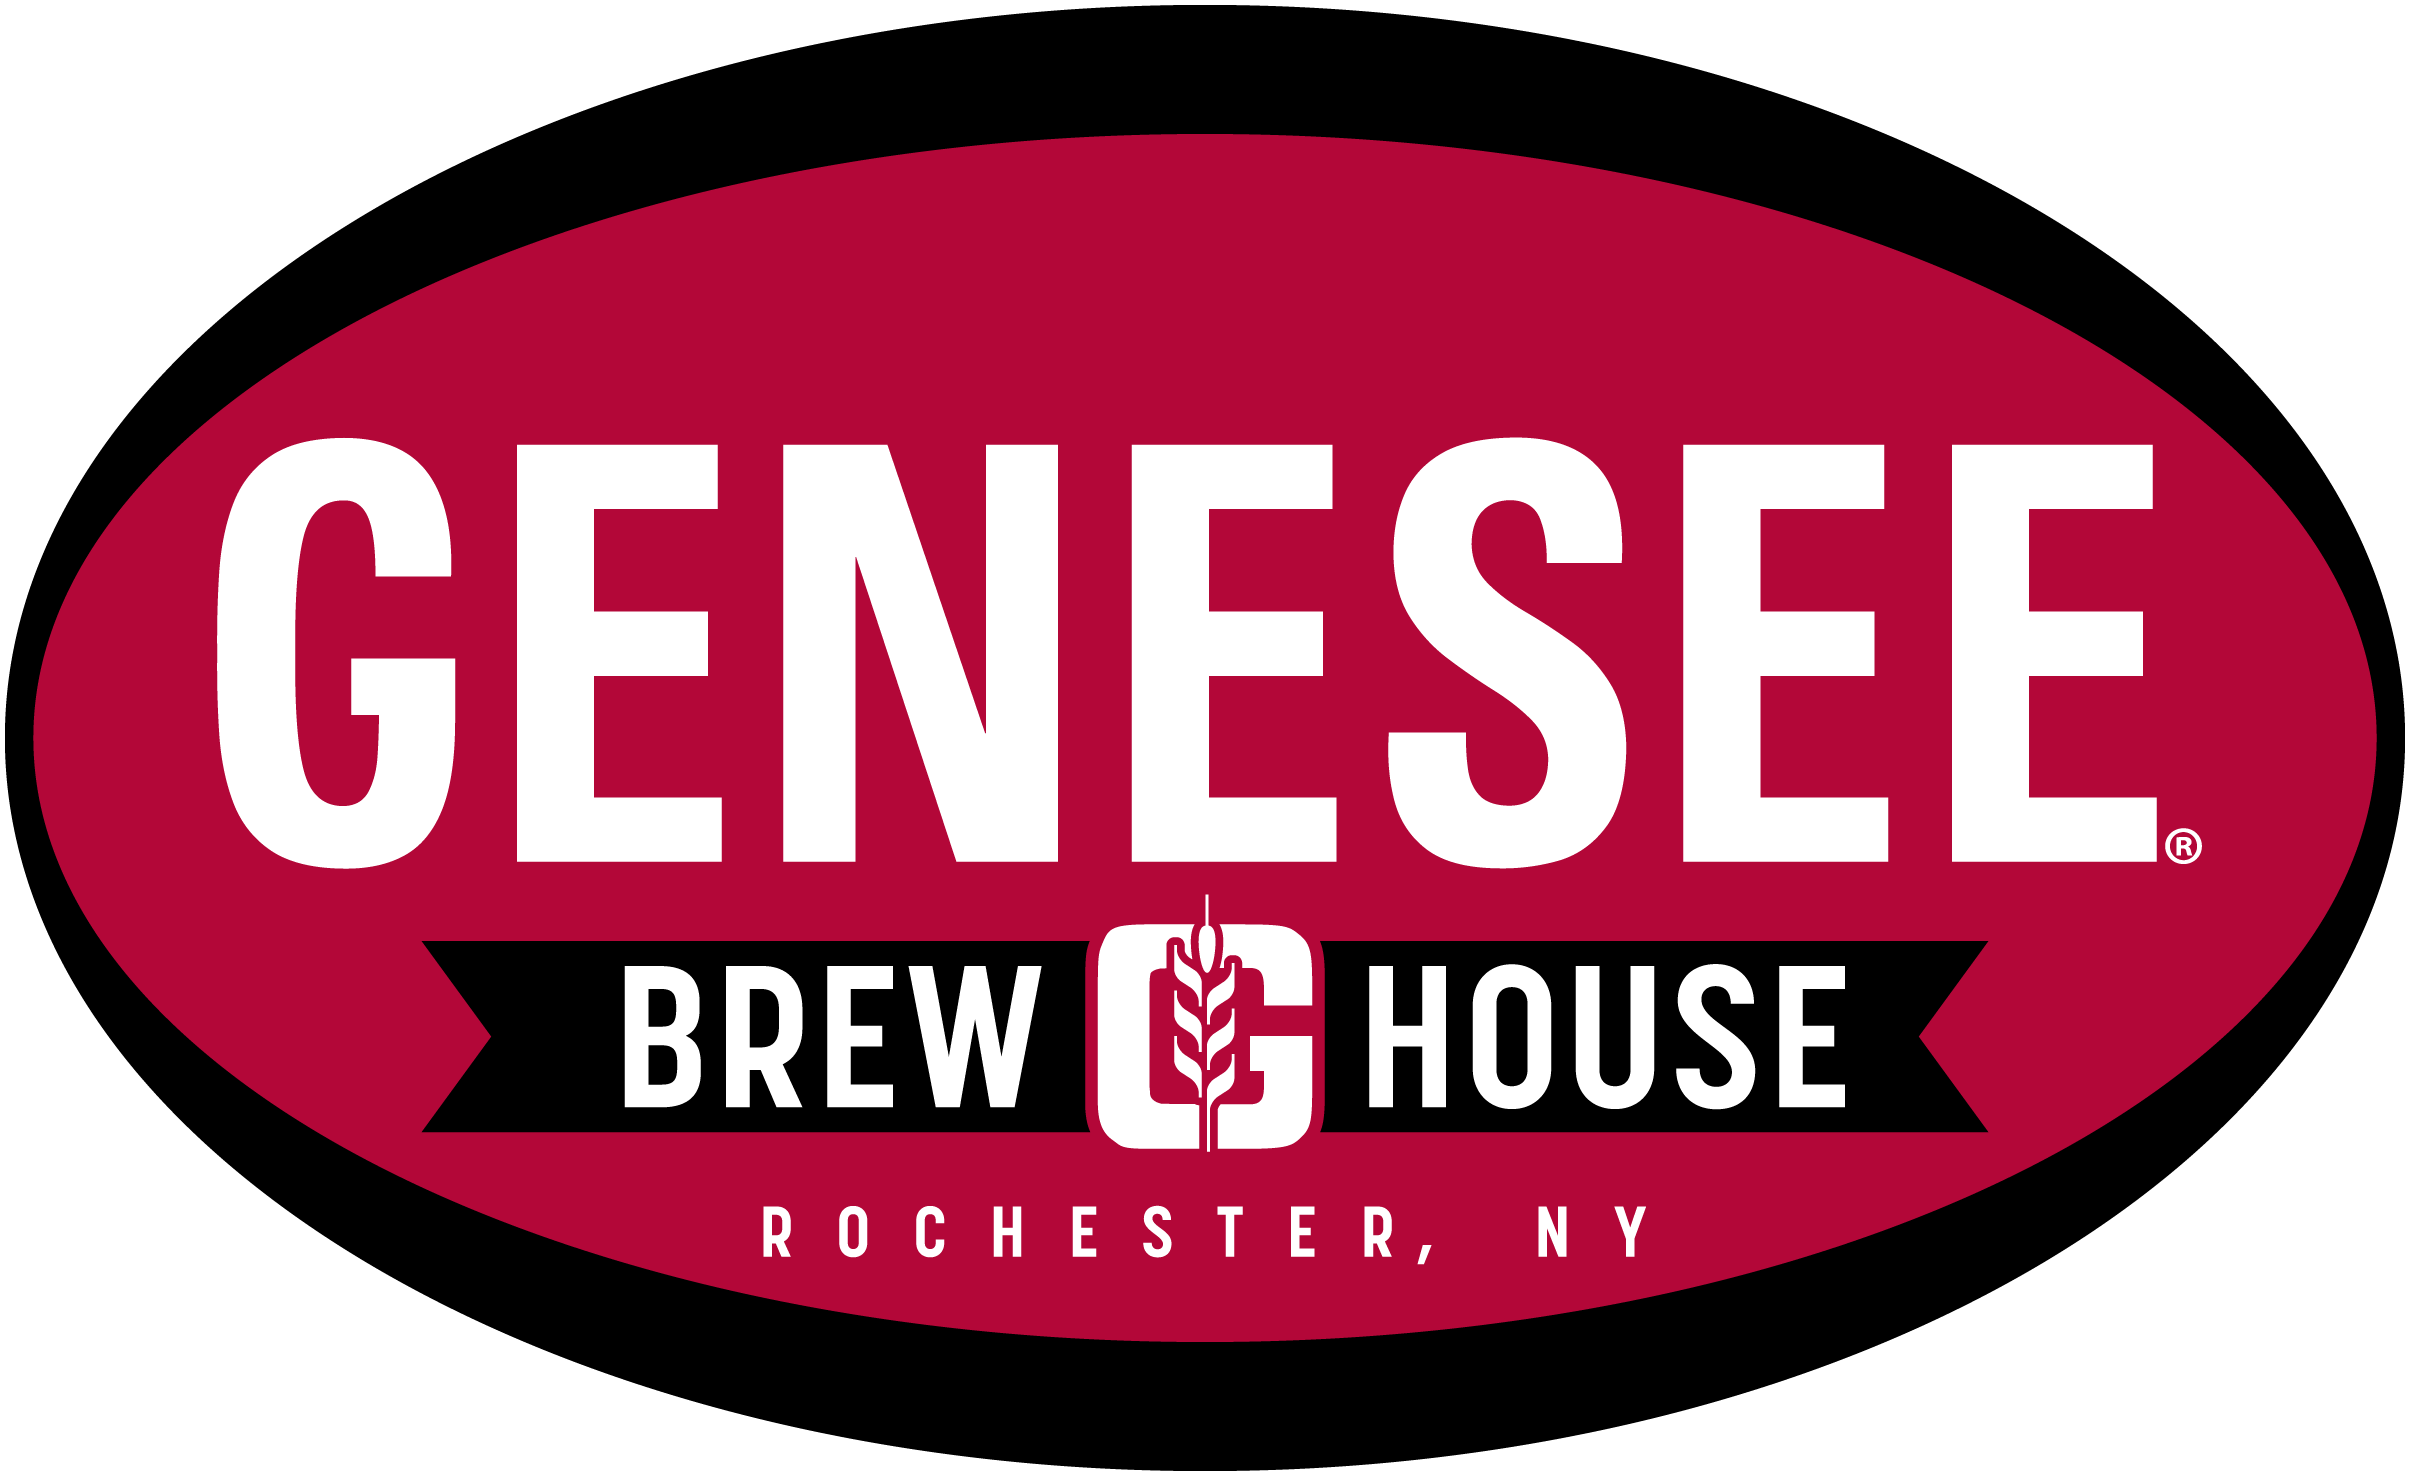 The Genesee Brew House